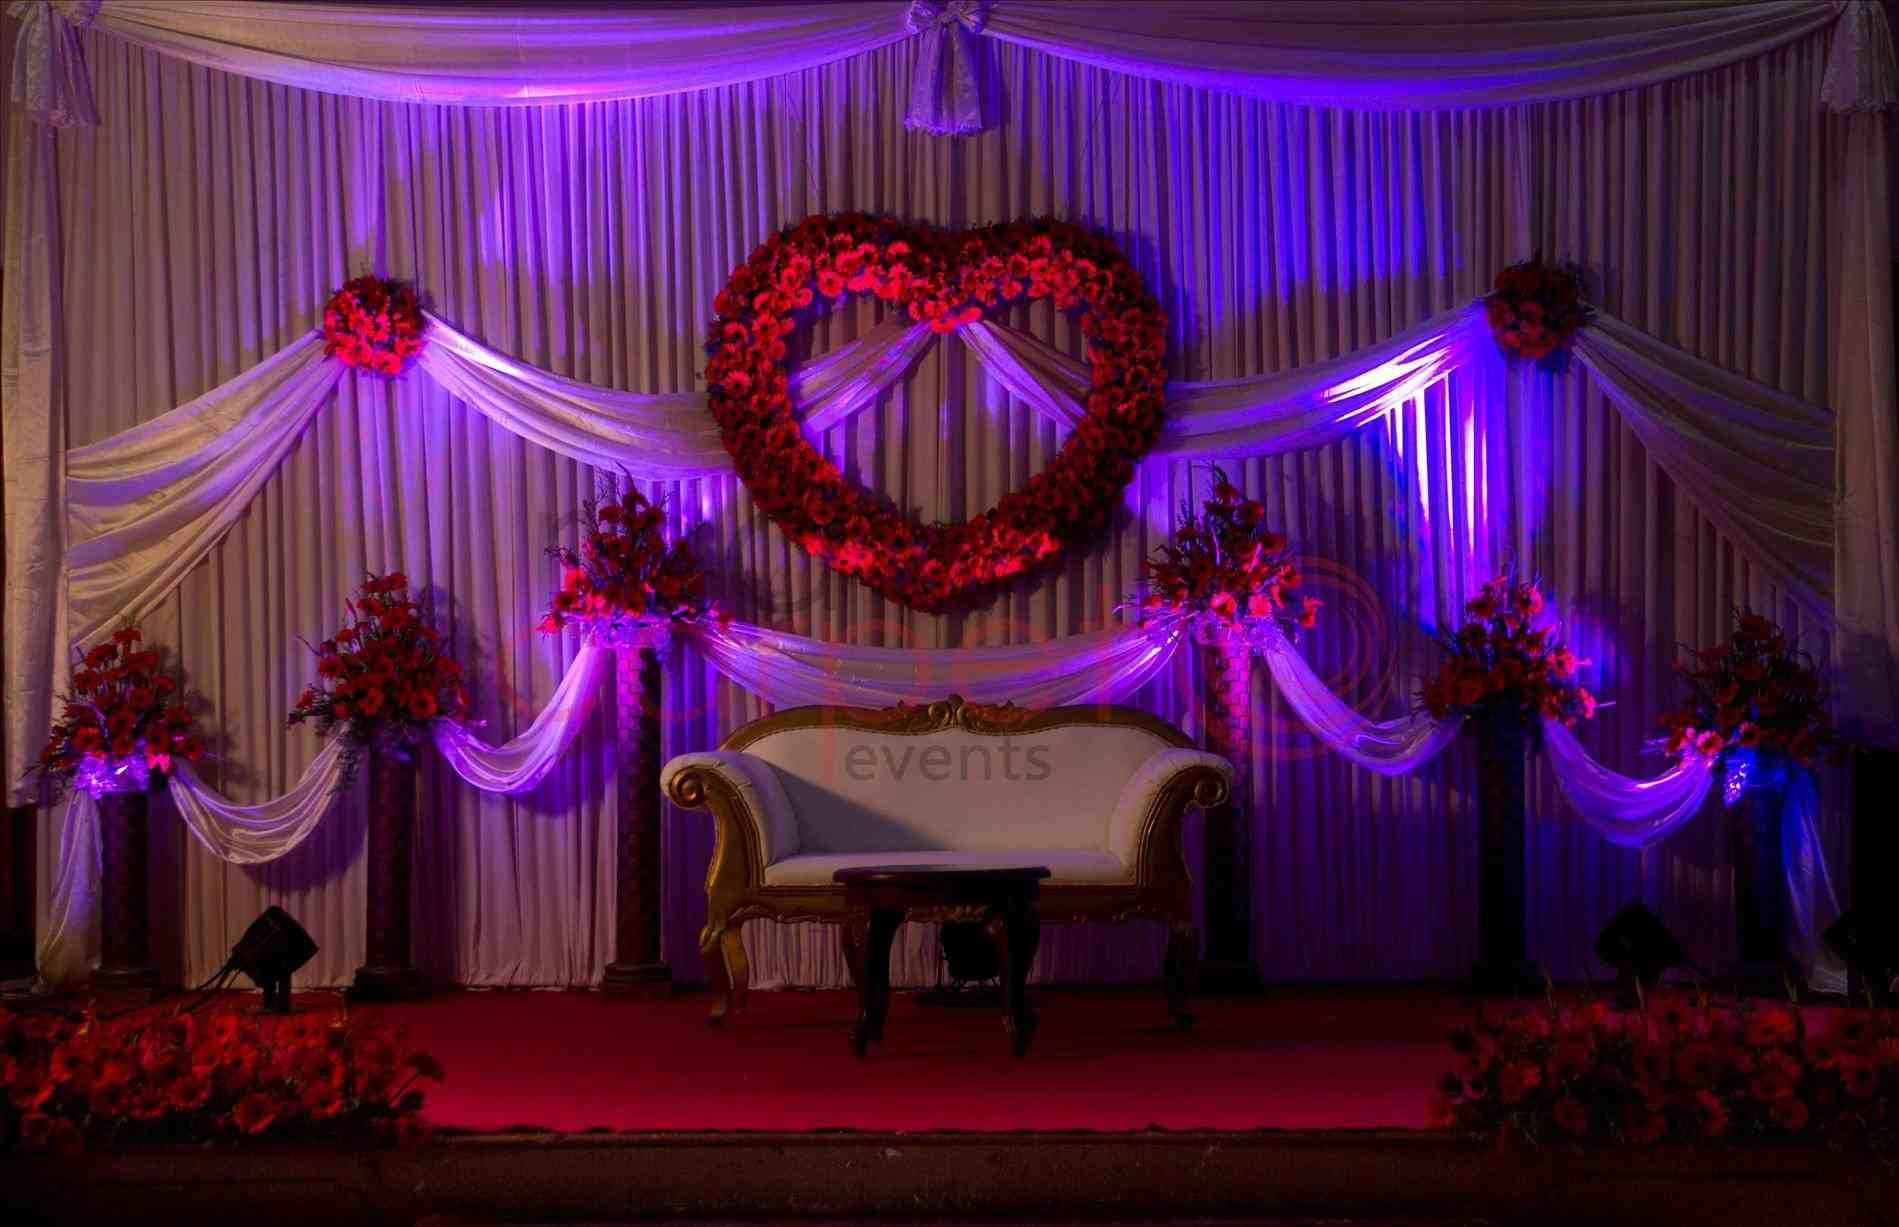 Wedding stage decoration with balloons  simple indian wedding decorations  Weddings  Pinterest  Wedding